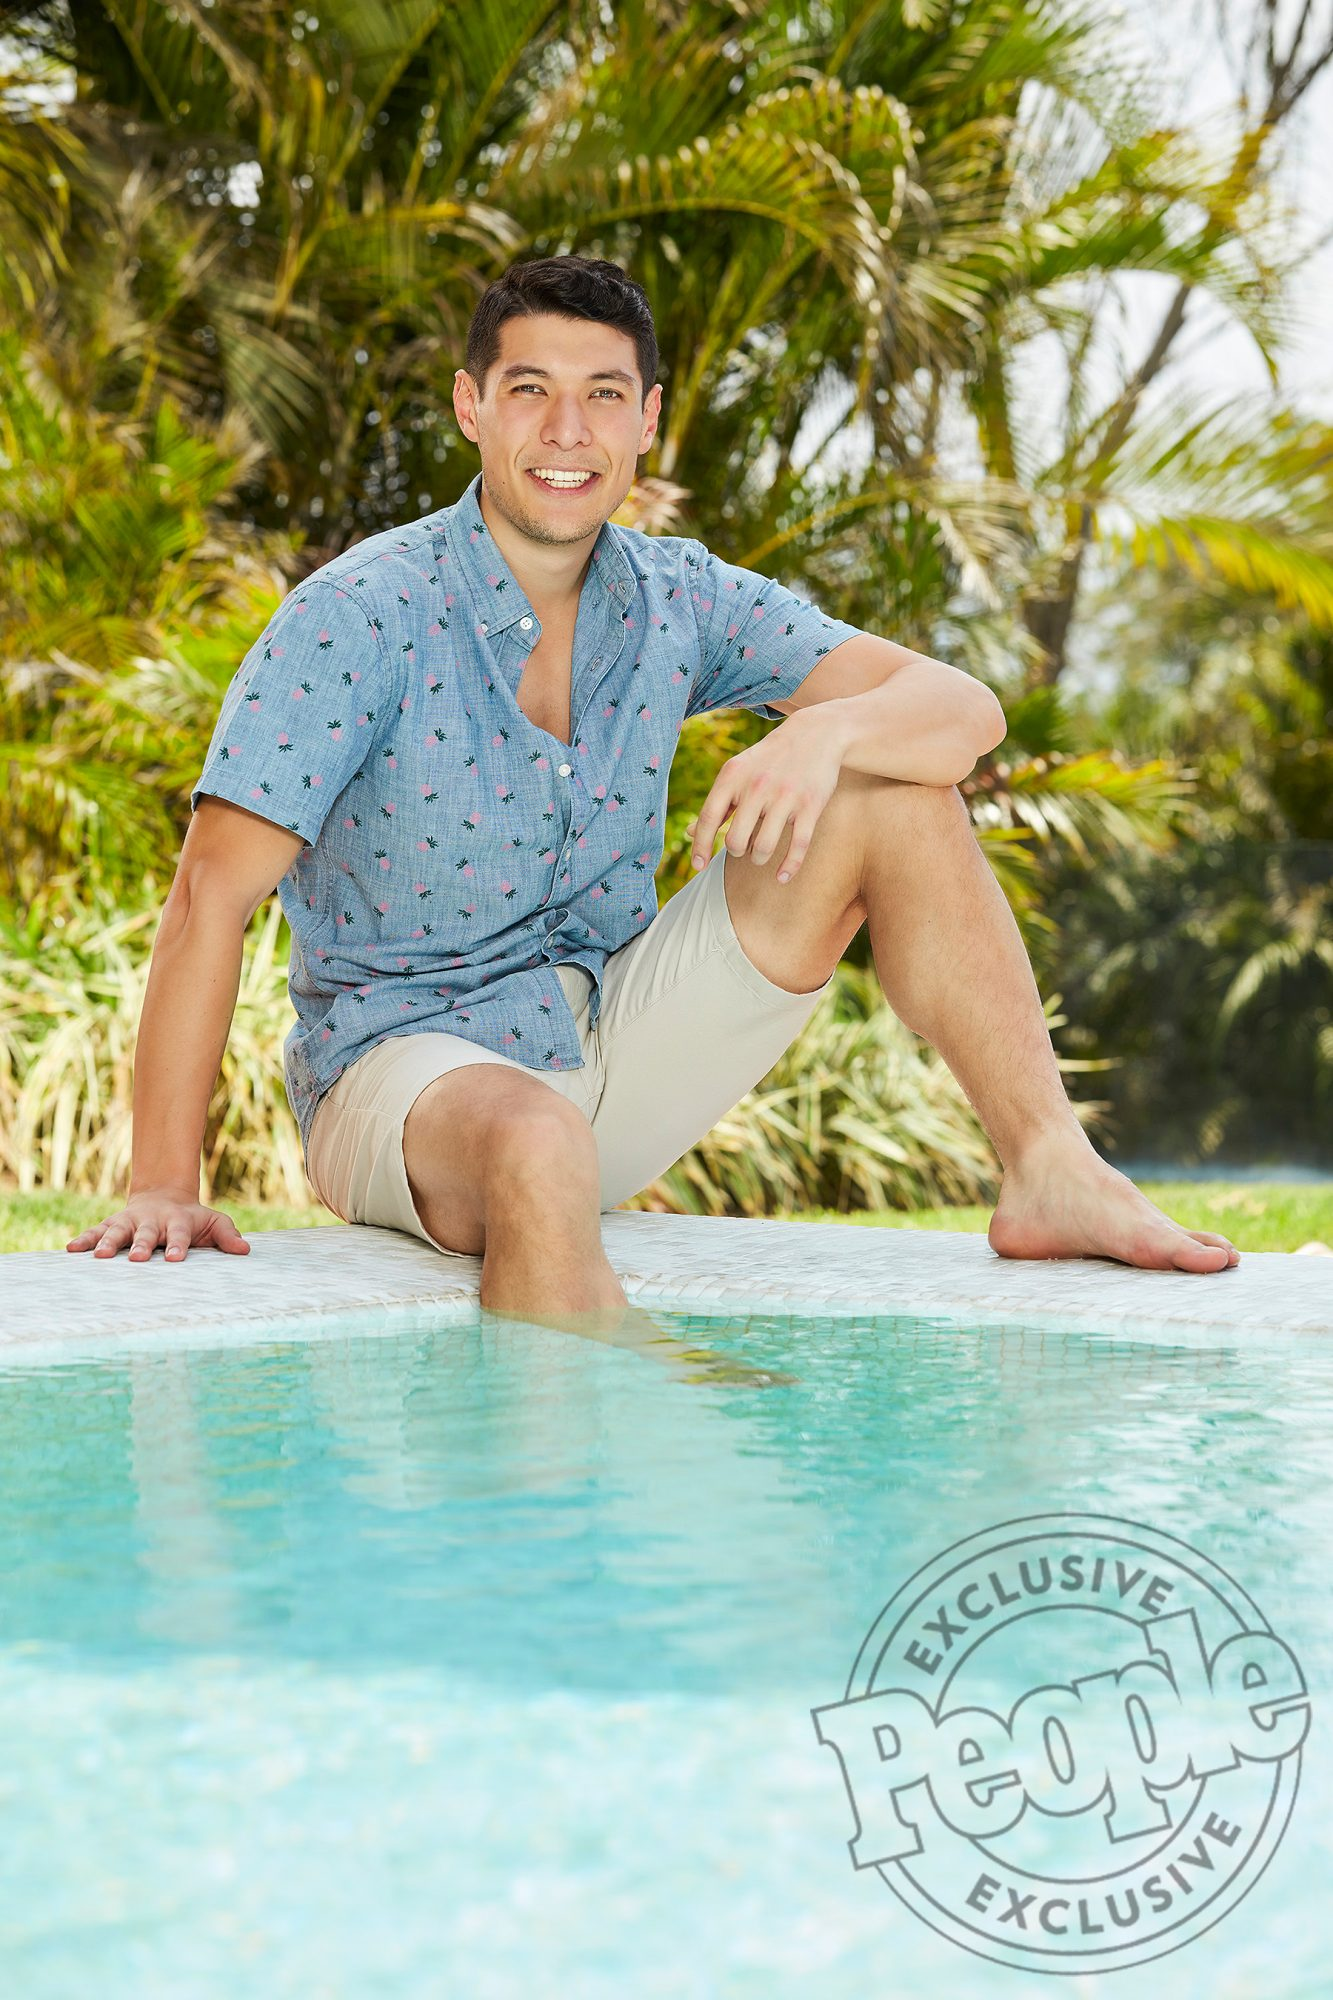 Bachelor in Paradise Cast: See Who's Looking for Love on Season 5